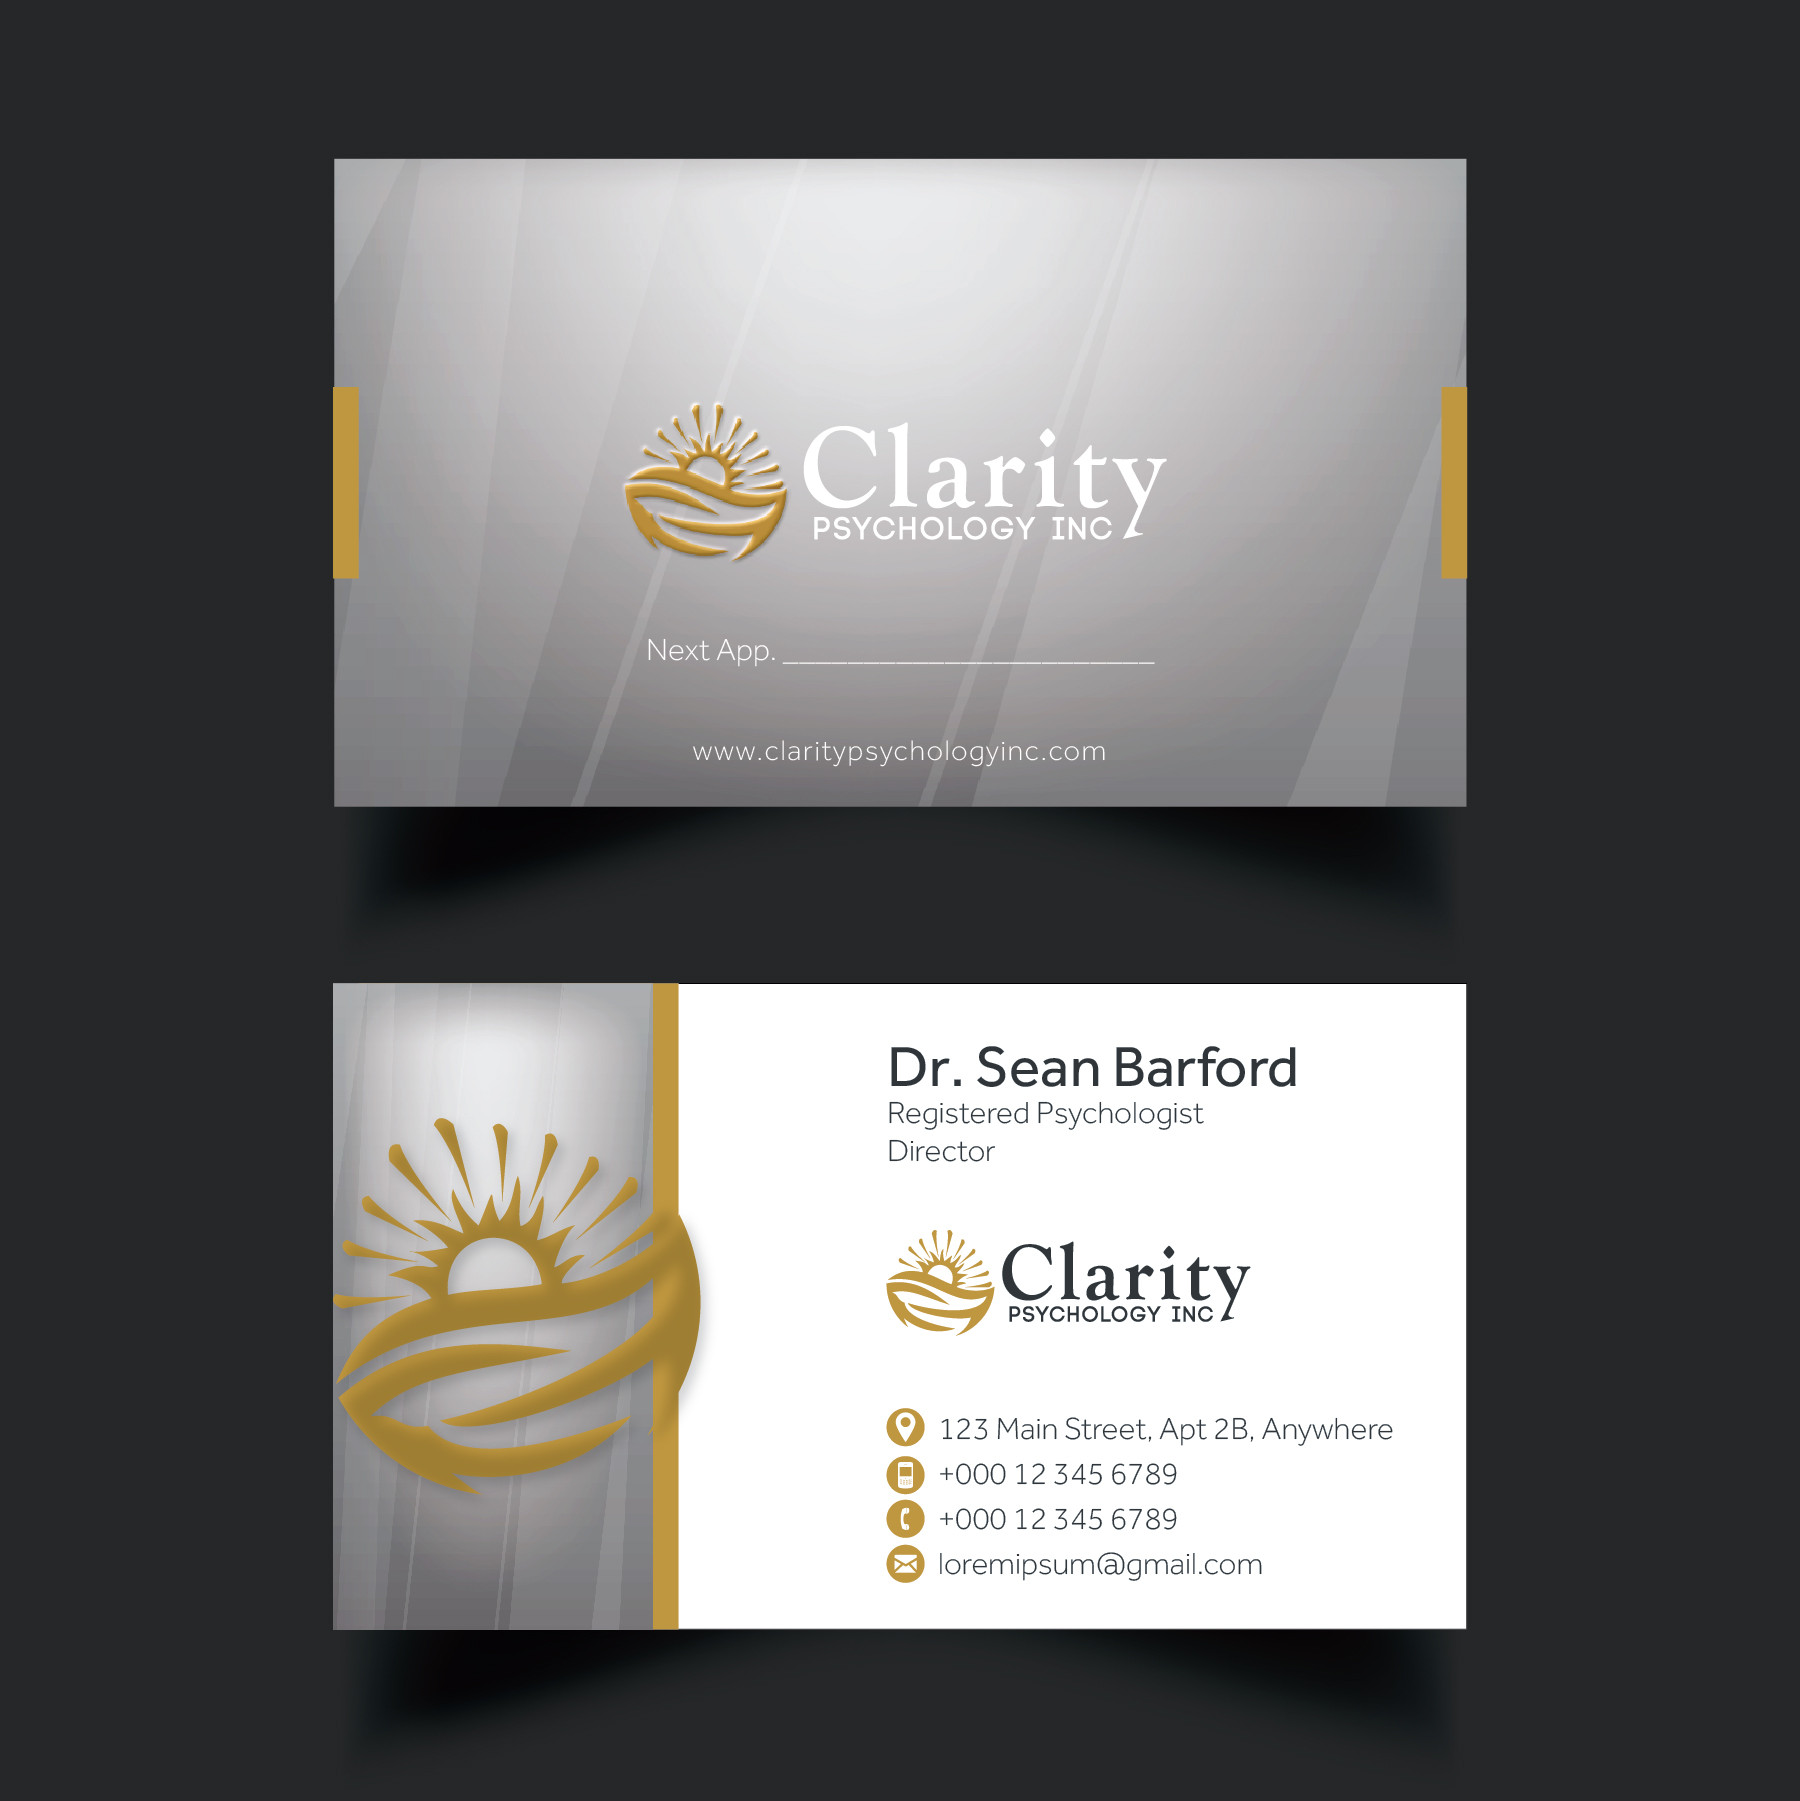 Business Card Design Contests » Professional Business Card Design ...